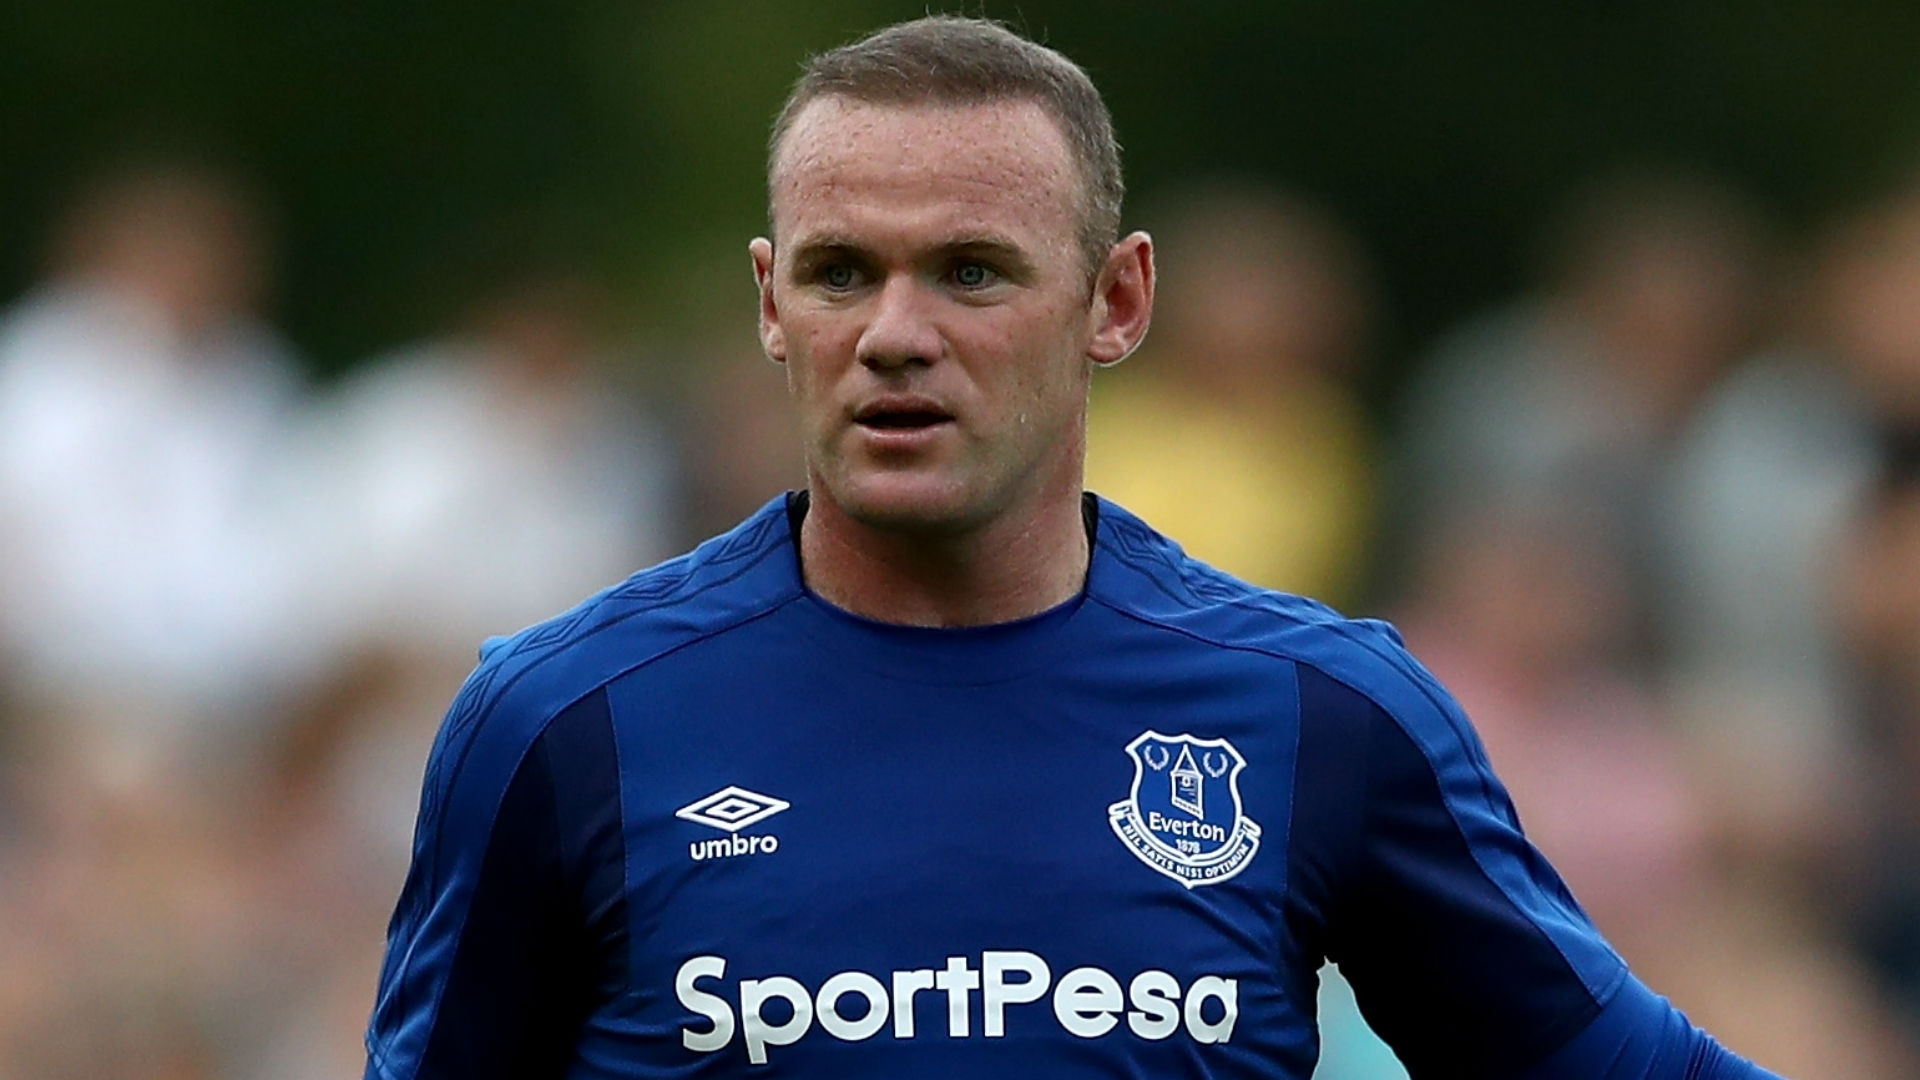 Rooney recently rejoined Everton, after initially leaving the club for United back in 2004.